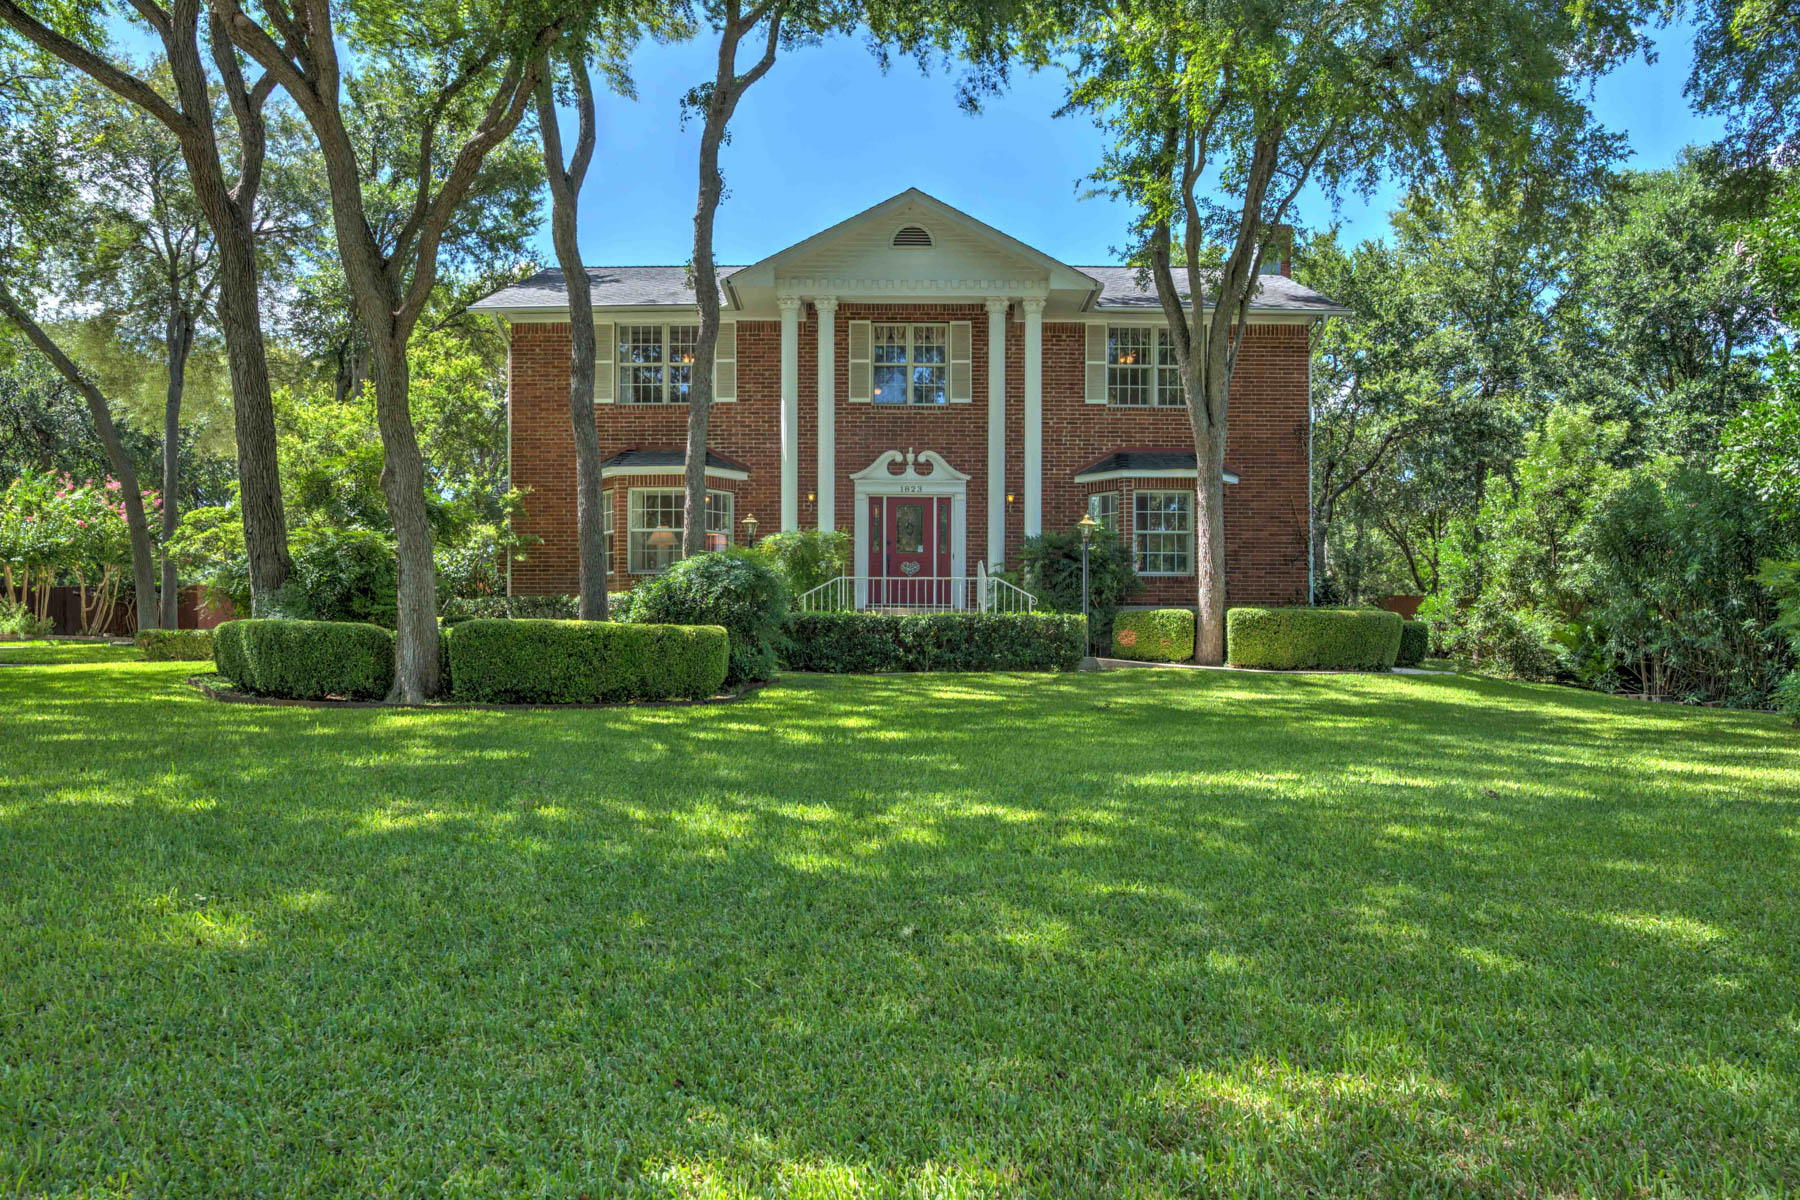 Casa Unifamiliar por un Venta en Gorgeous Home in Cypress Rapids 1823 Pebble Brook Dr New Braunfels, Texas 78130 Estados Unidos